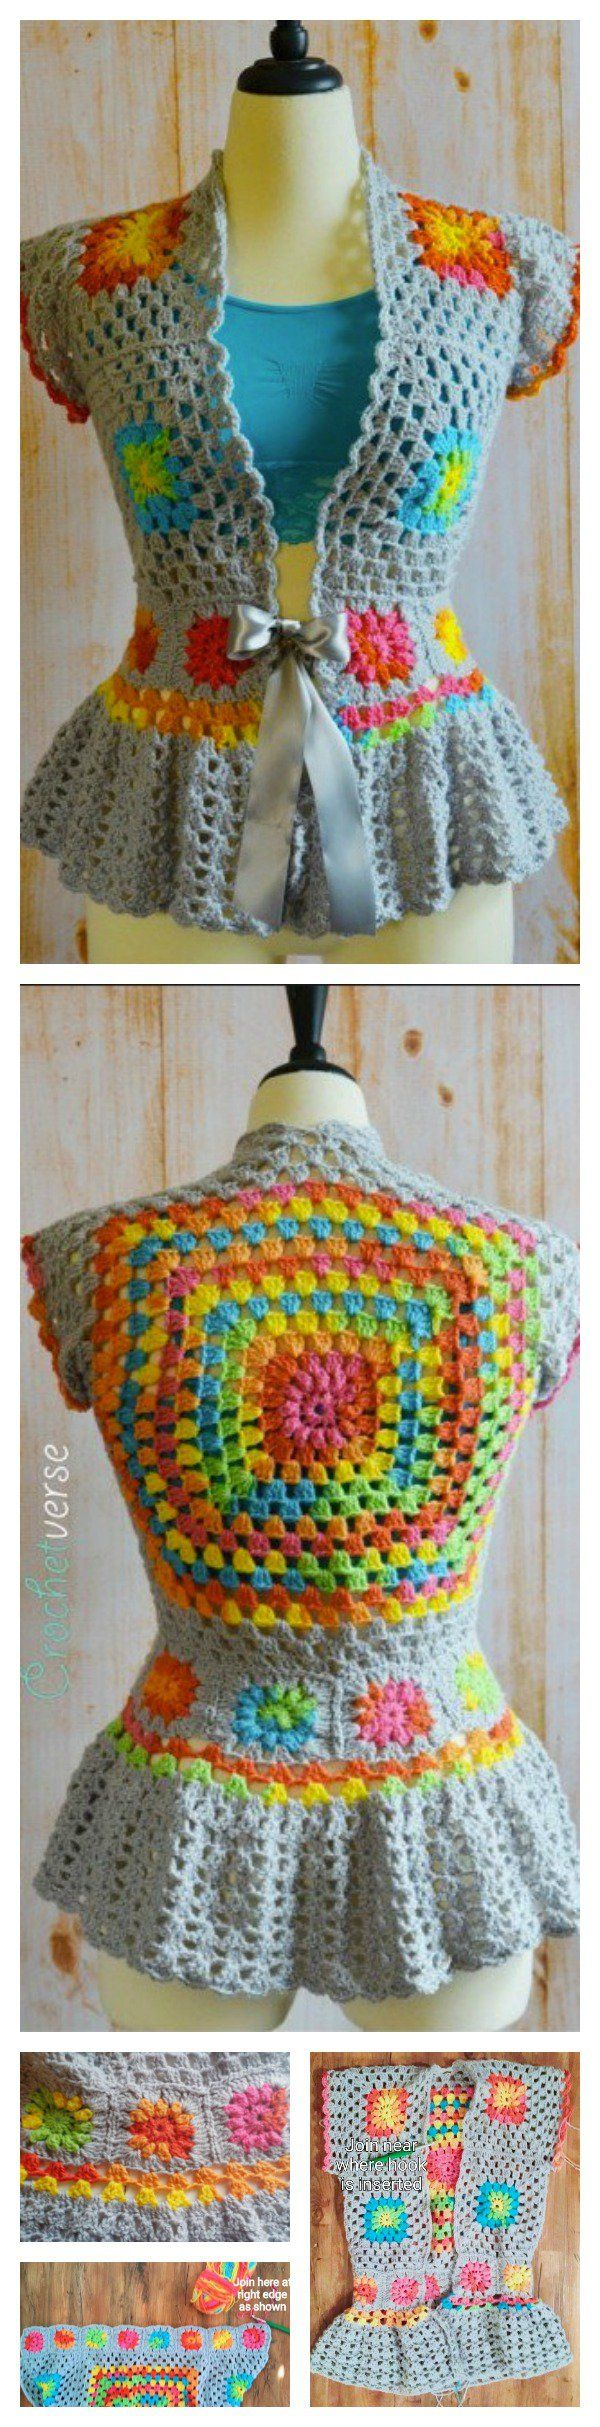 DIY Crochet-Garden Party Jacket FREE pattern